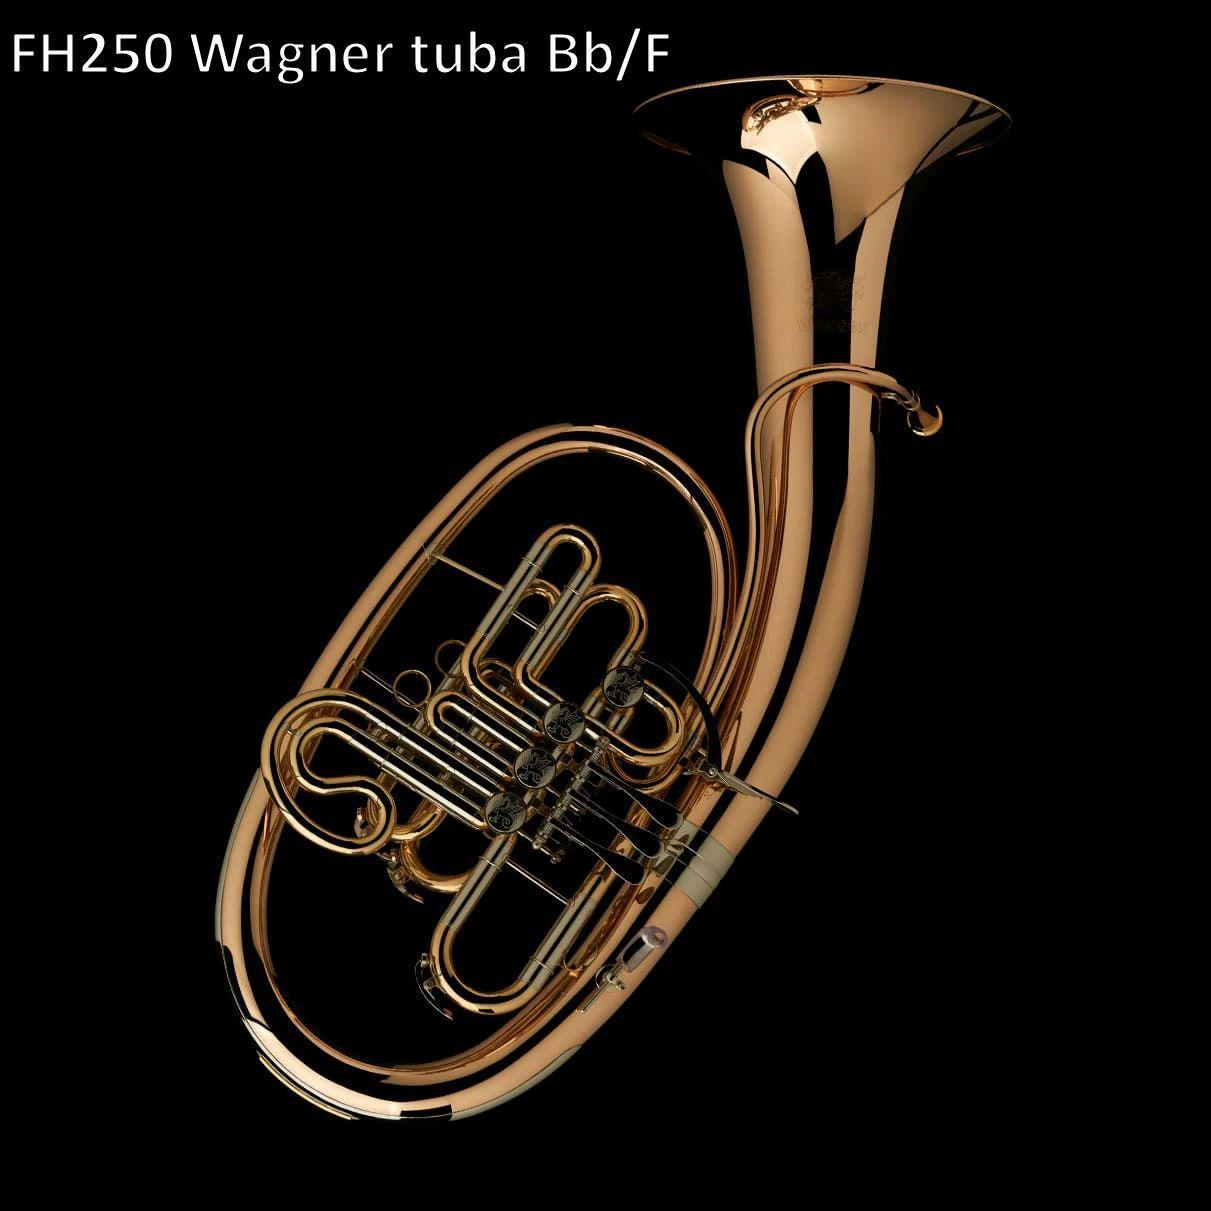 Wessex Bb/F Wagner Tuba – FH250